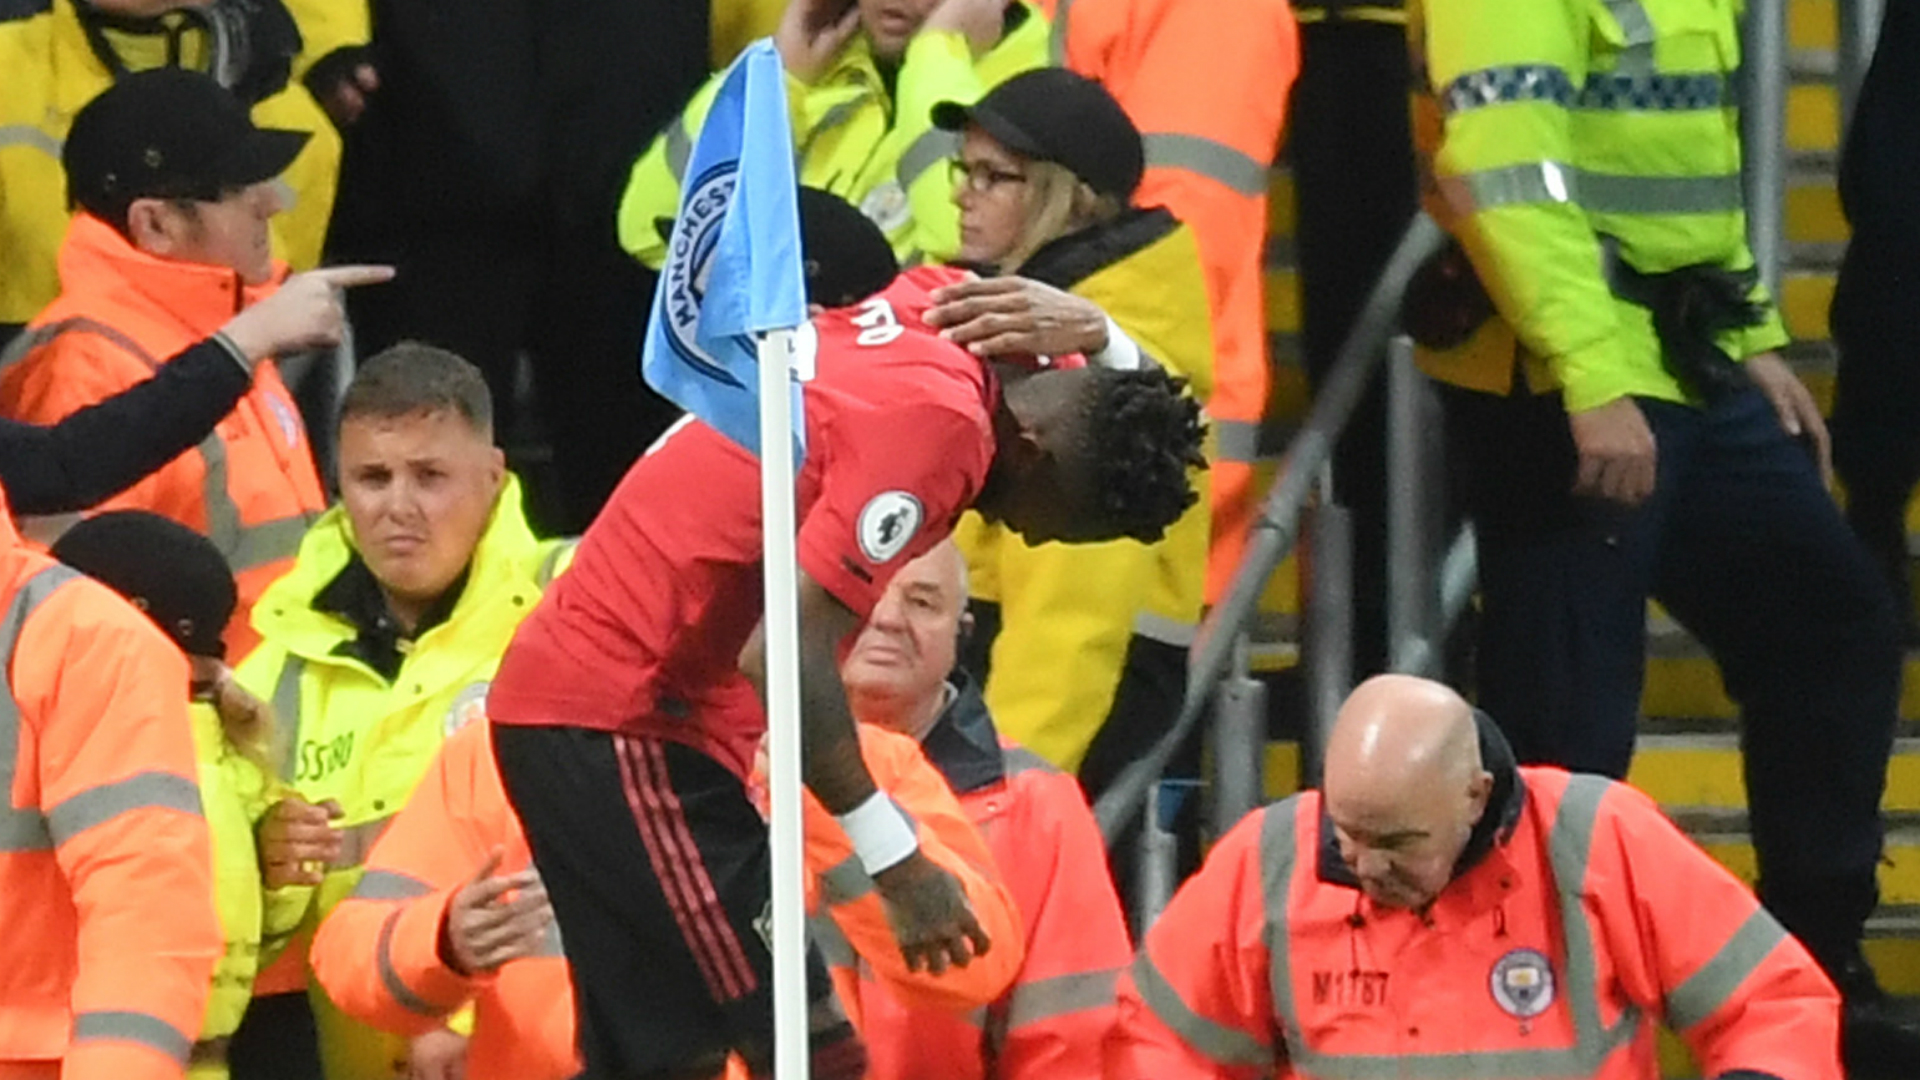 Fred hit by object during Manchester derby as Kick It Out call for action over alleged racist abuse